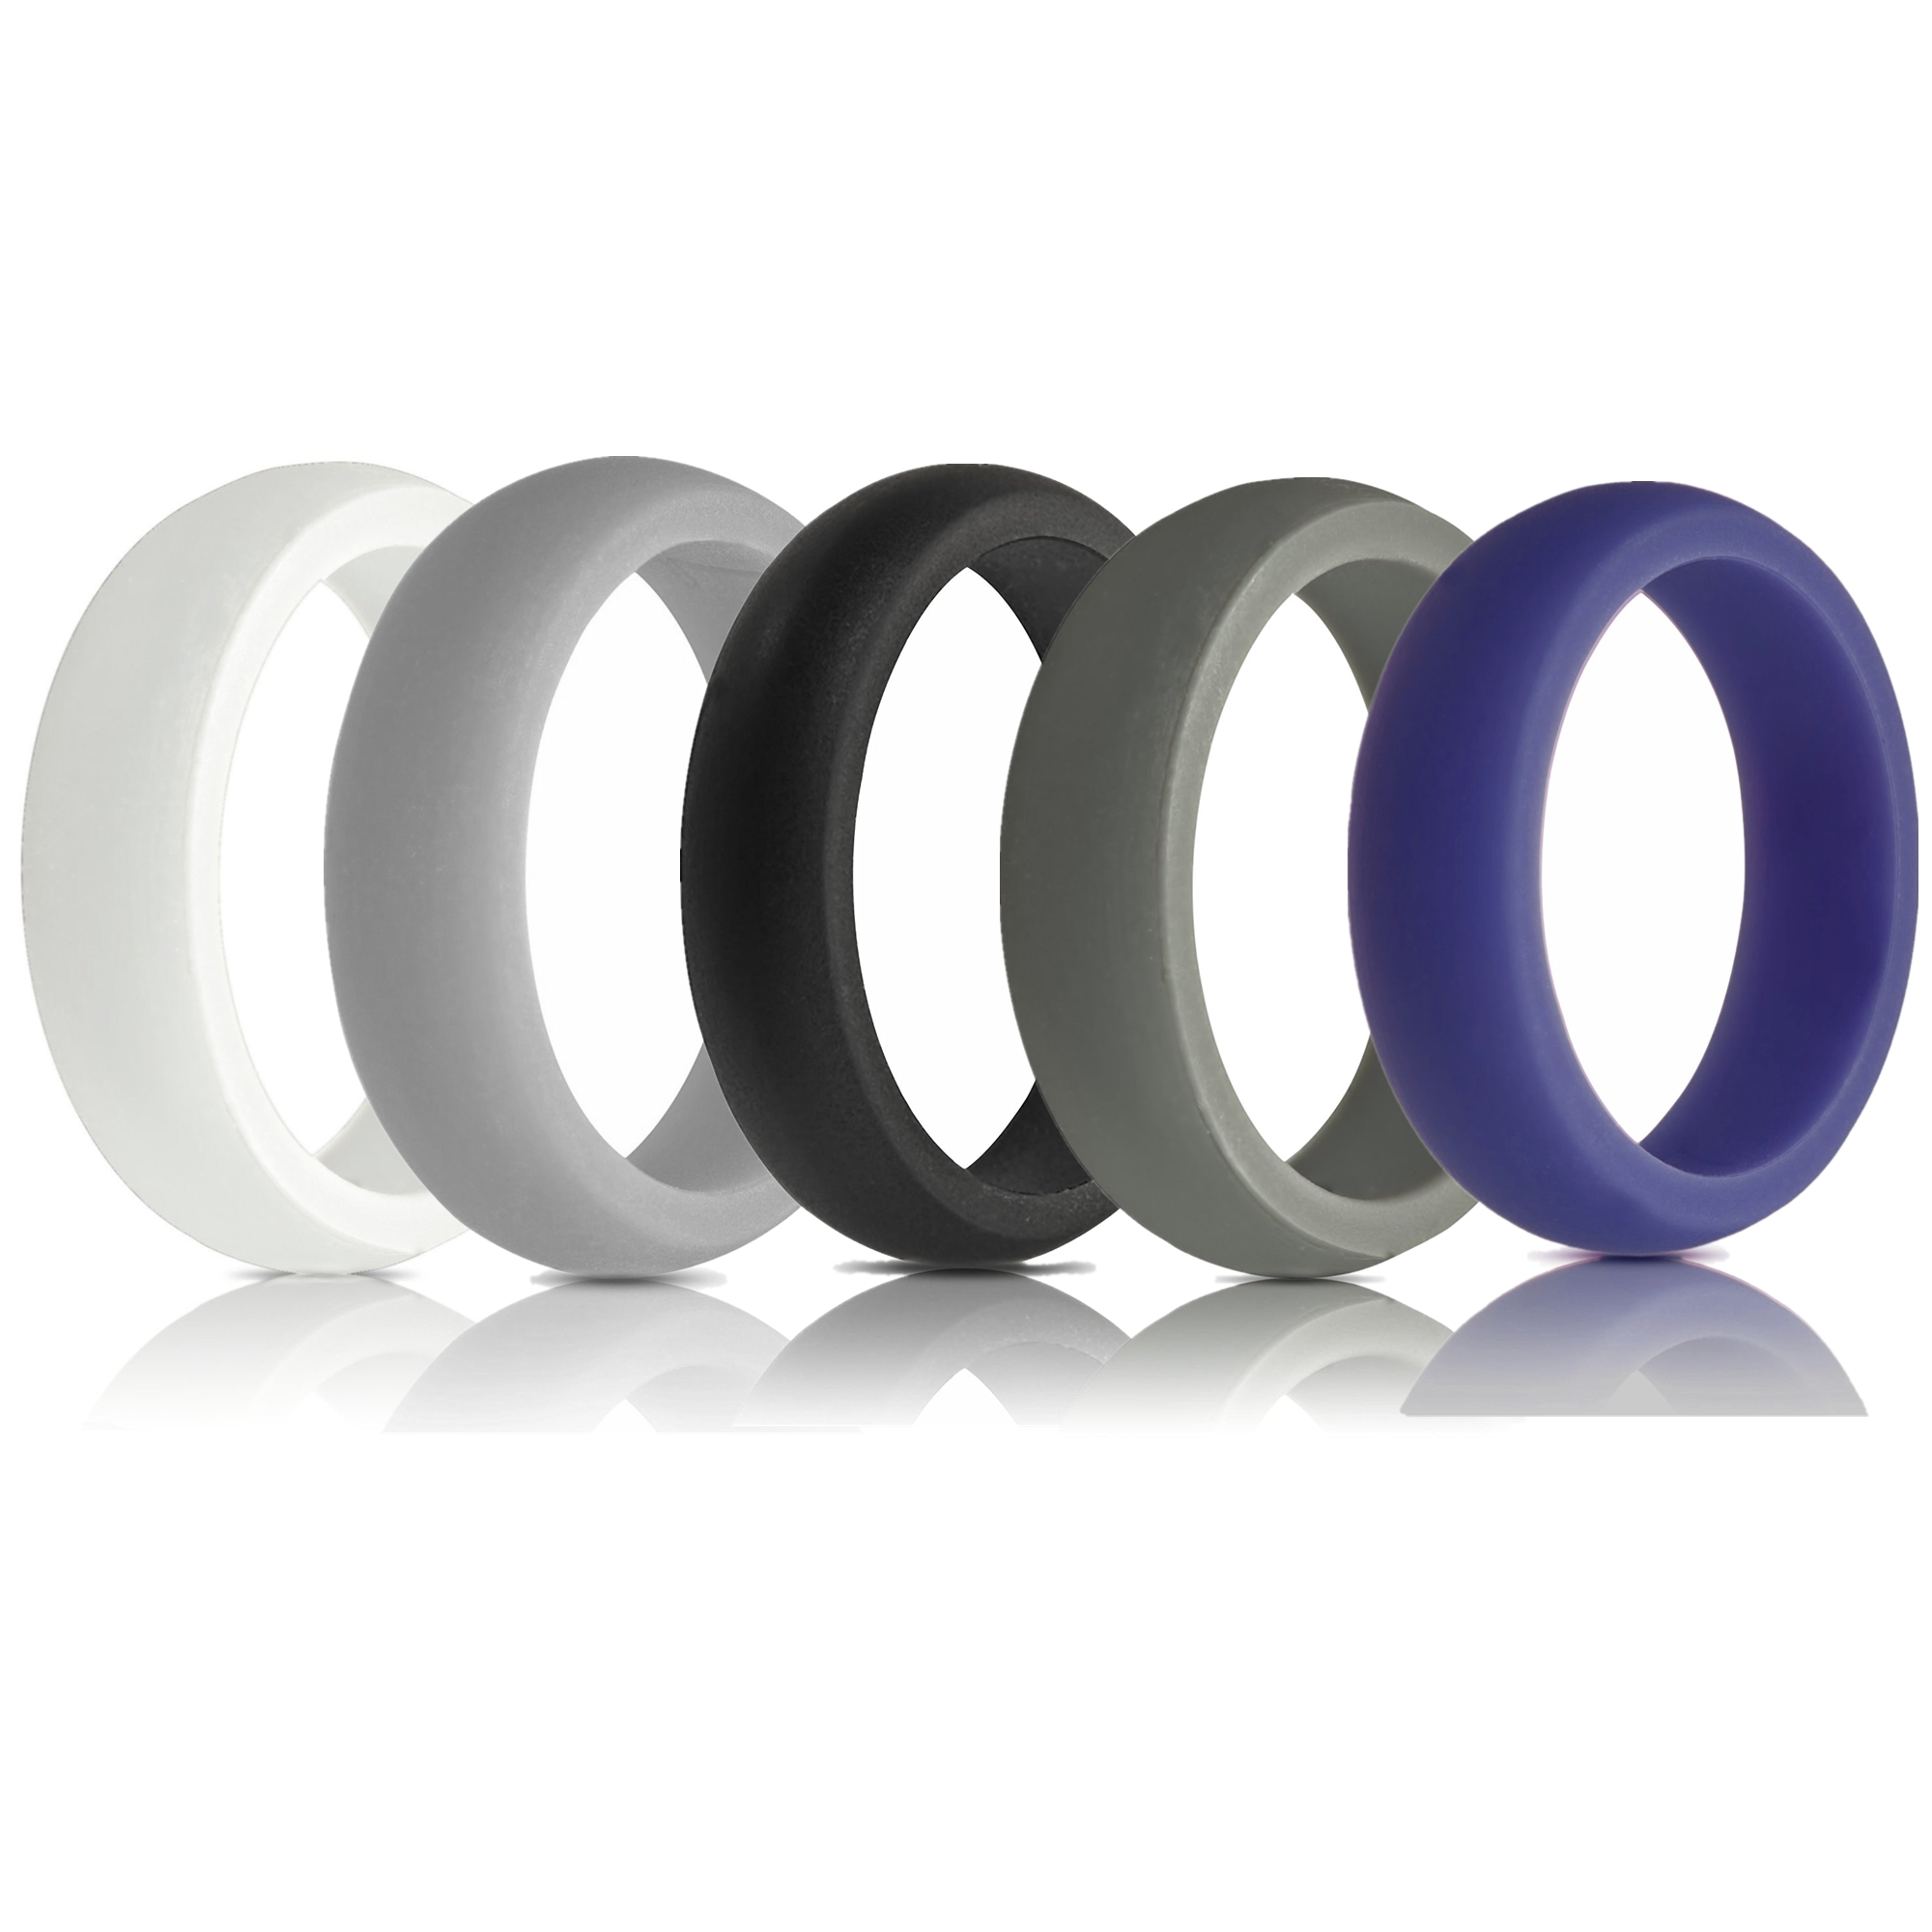 Wedding Rings For Athletes | Moretek Silicone Wedding Ring Premium Medical Grade Wedding Bands